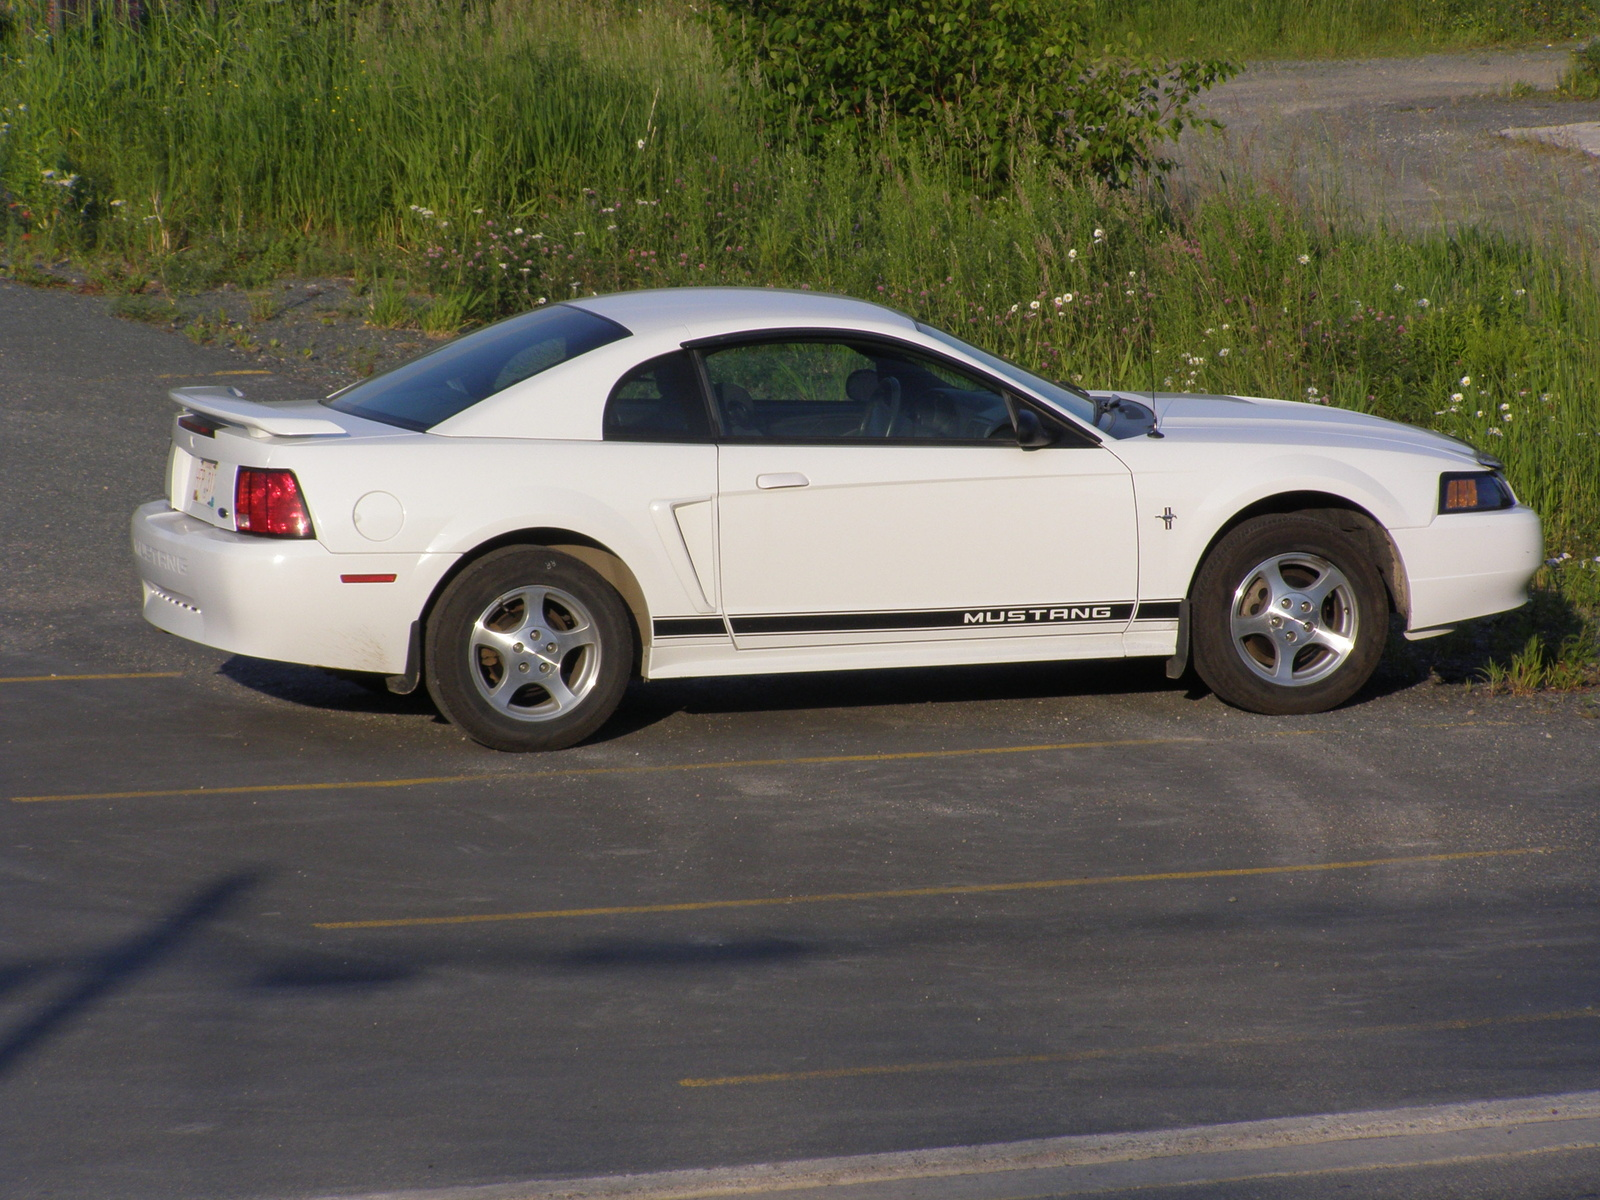 Used 2004 Ford Mustang Picture of 2002 Ford Mustang Base, exterior